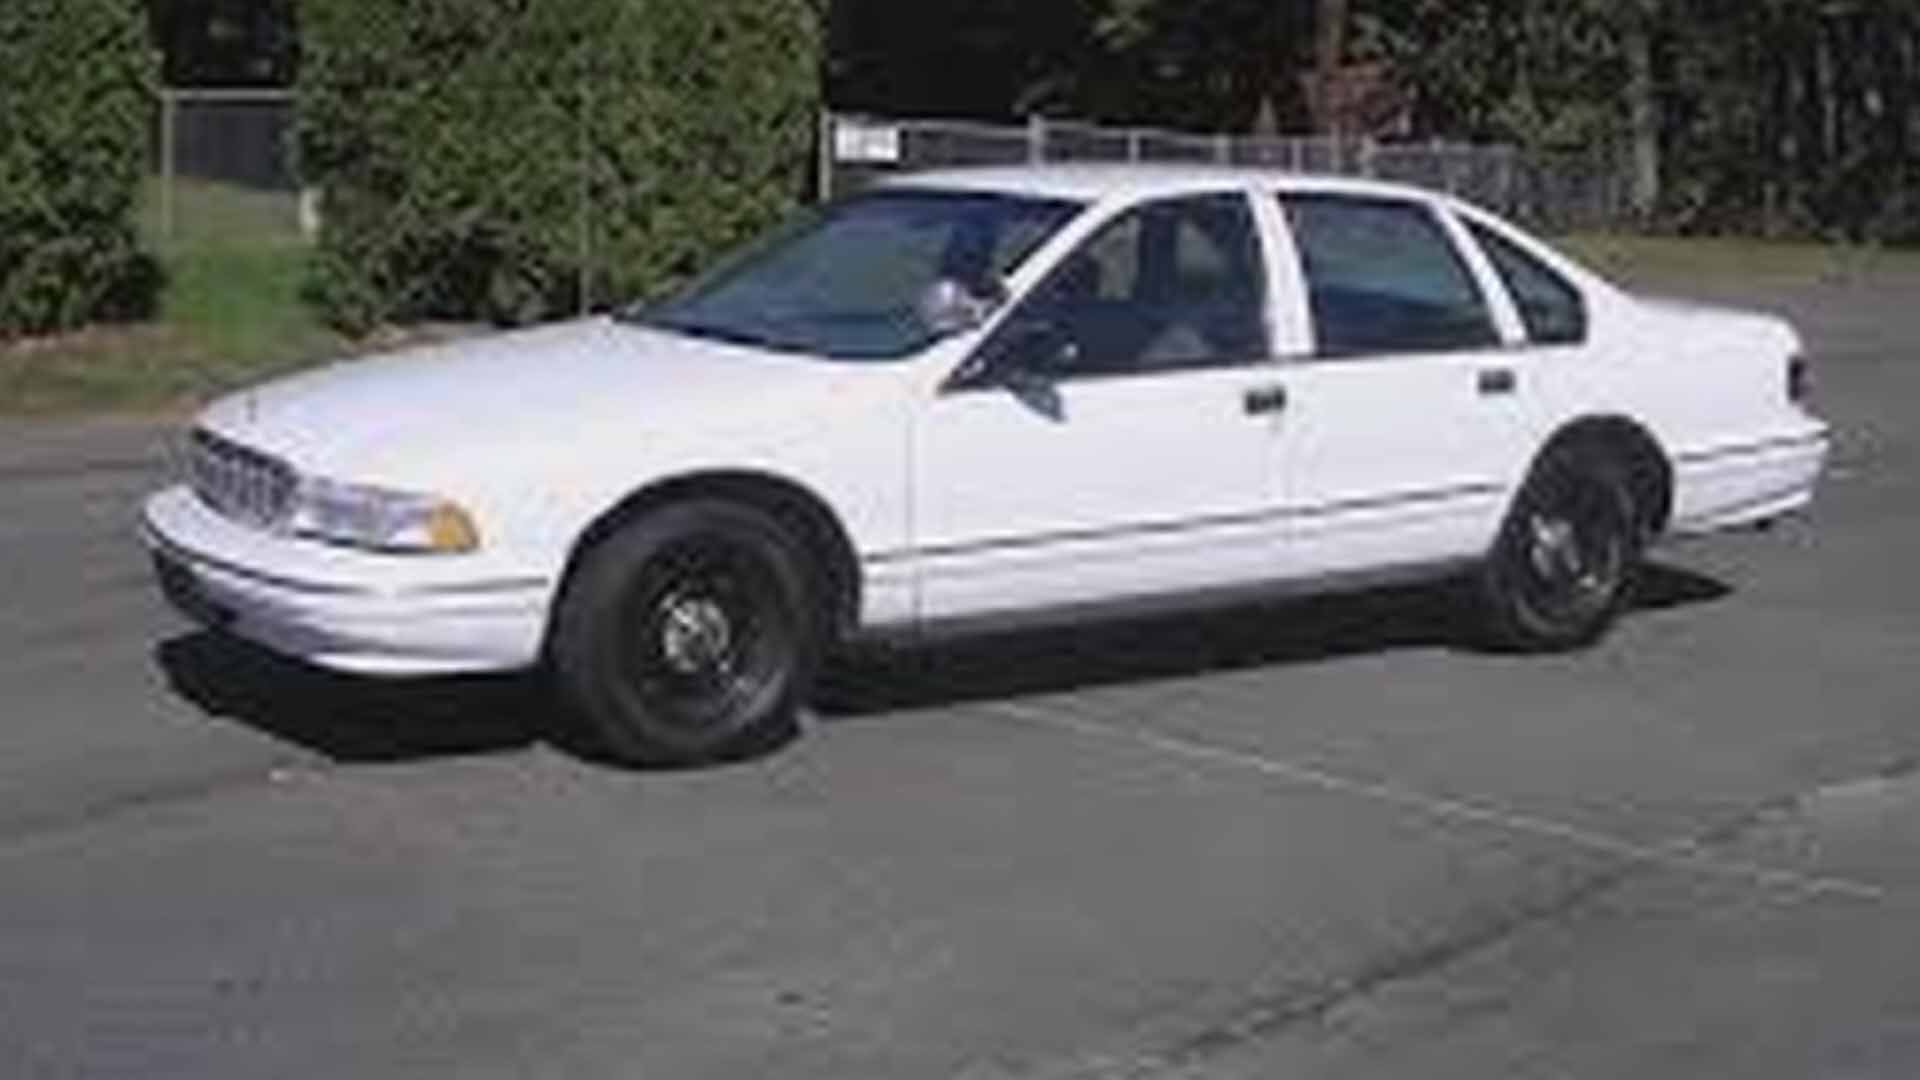 Police are looking for a car similar to this old white Chevrolet Caprice with a spot lamp on the driver's side. Credit: Major Case Squad